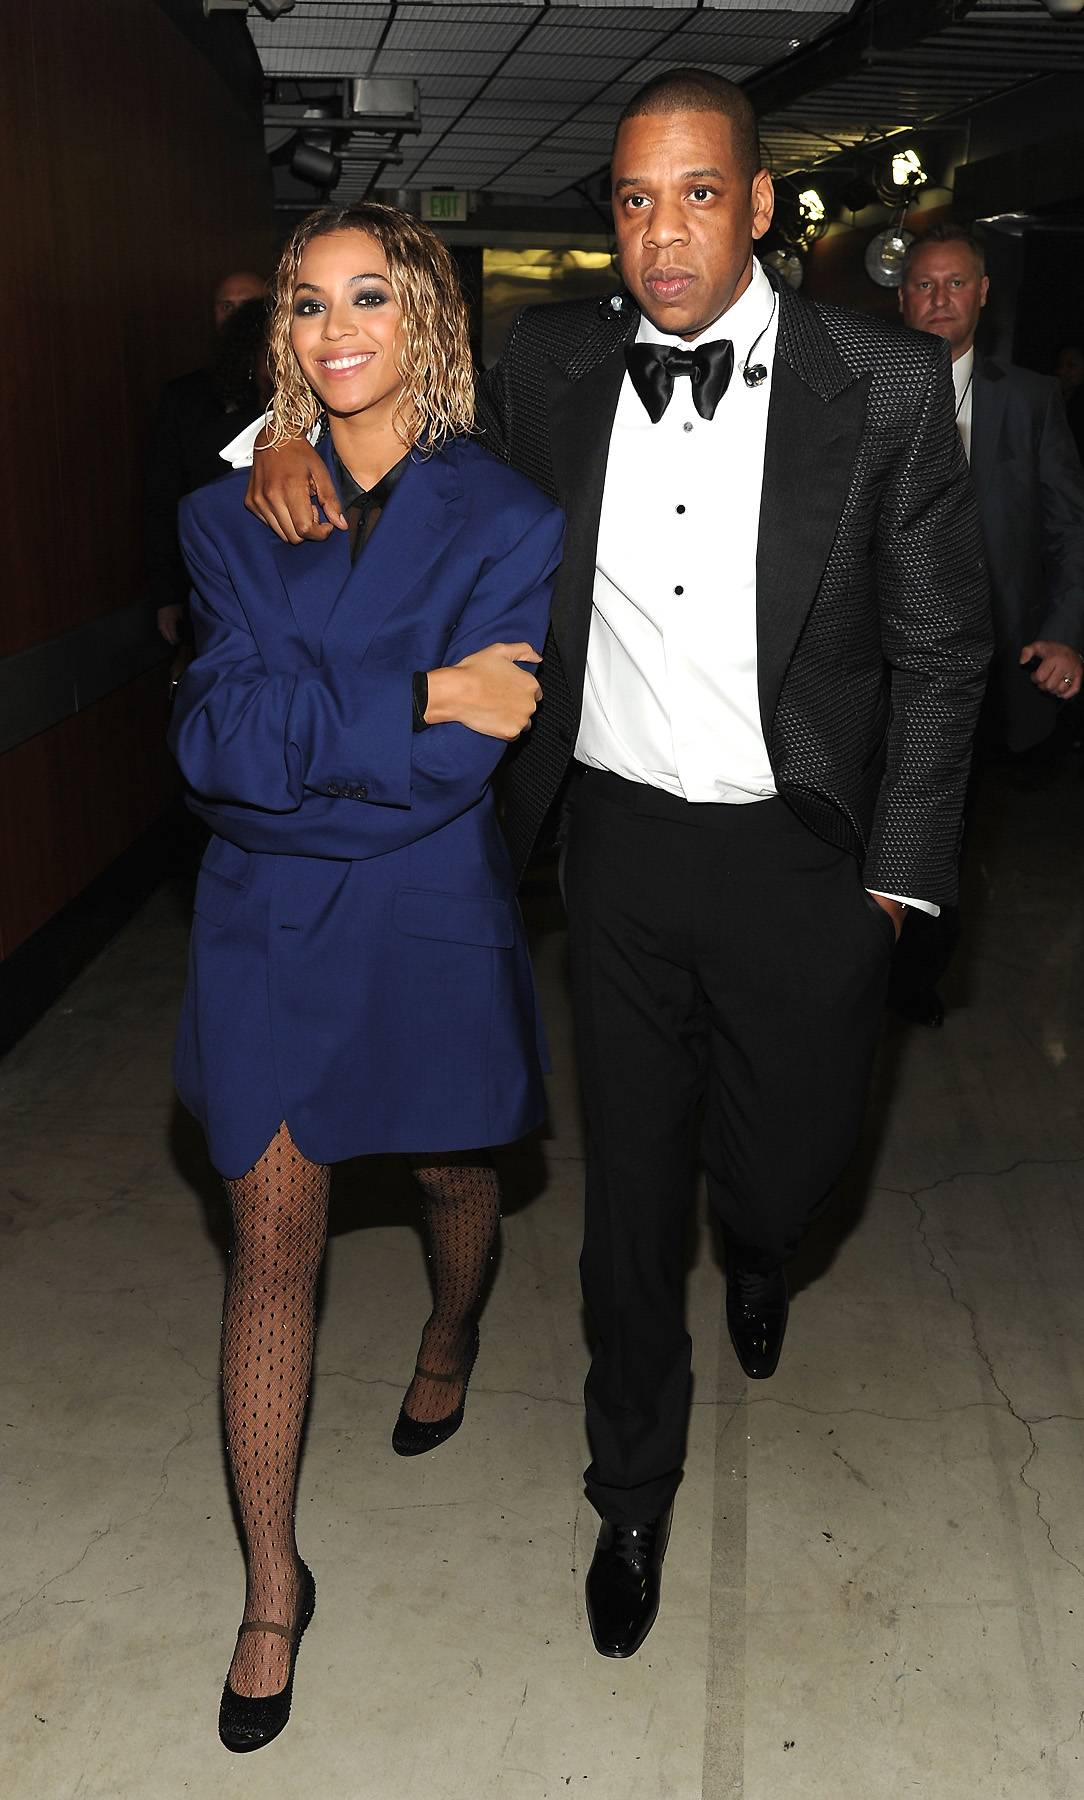 /content/dam/betcom/images/2014/02/National-02-01-02-15/021314-national-black-love-couples-who-we-look-up-to-jay-z-beyonce.jpg